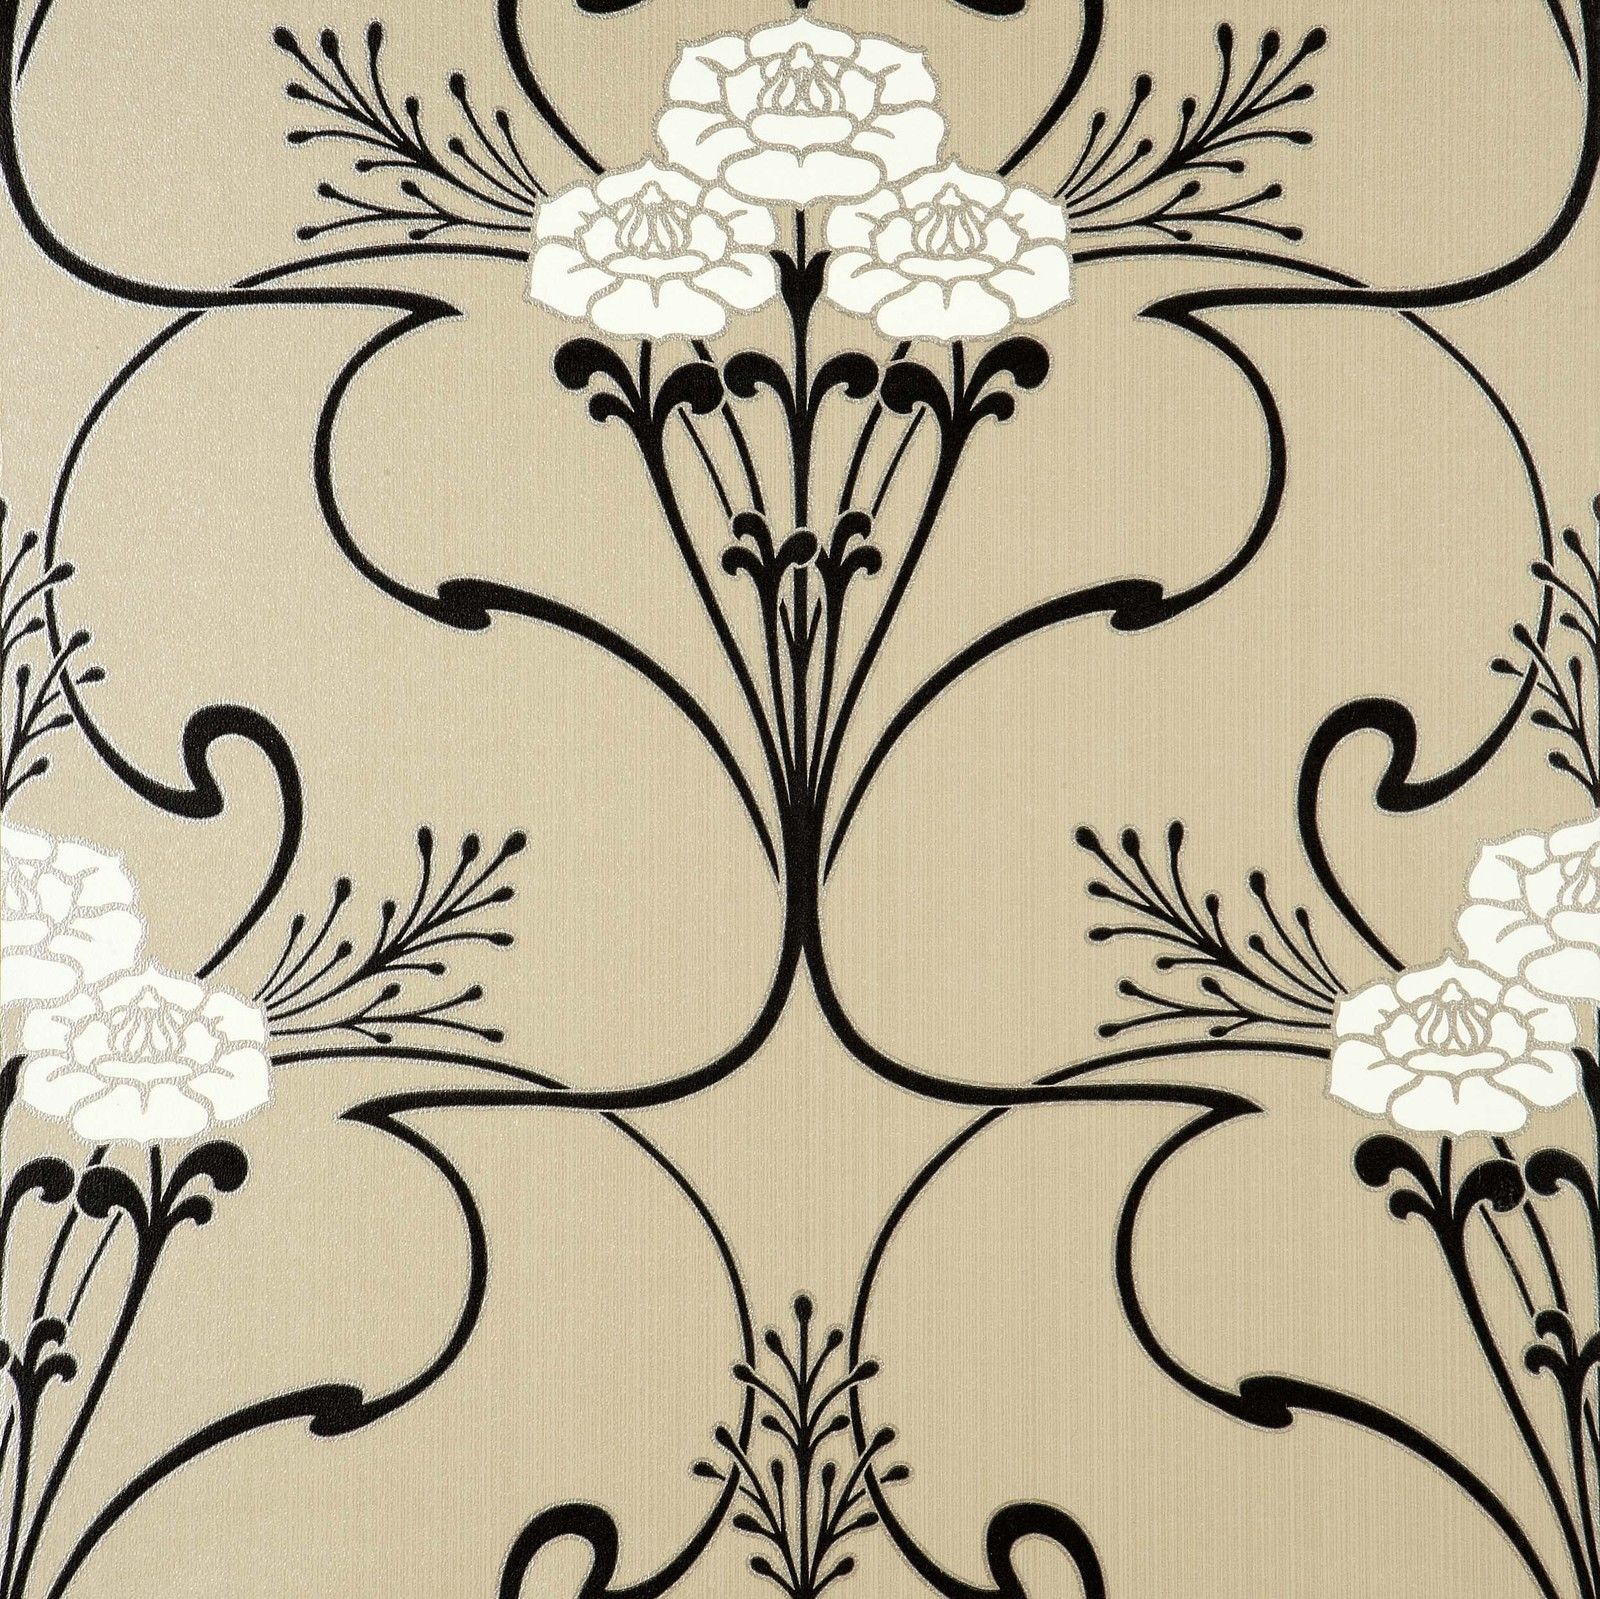 Flower Vine Art Deco style wallpaper in Beige White Black Gold 1600x1599